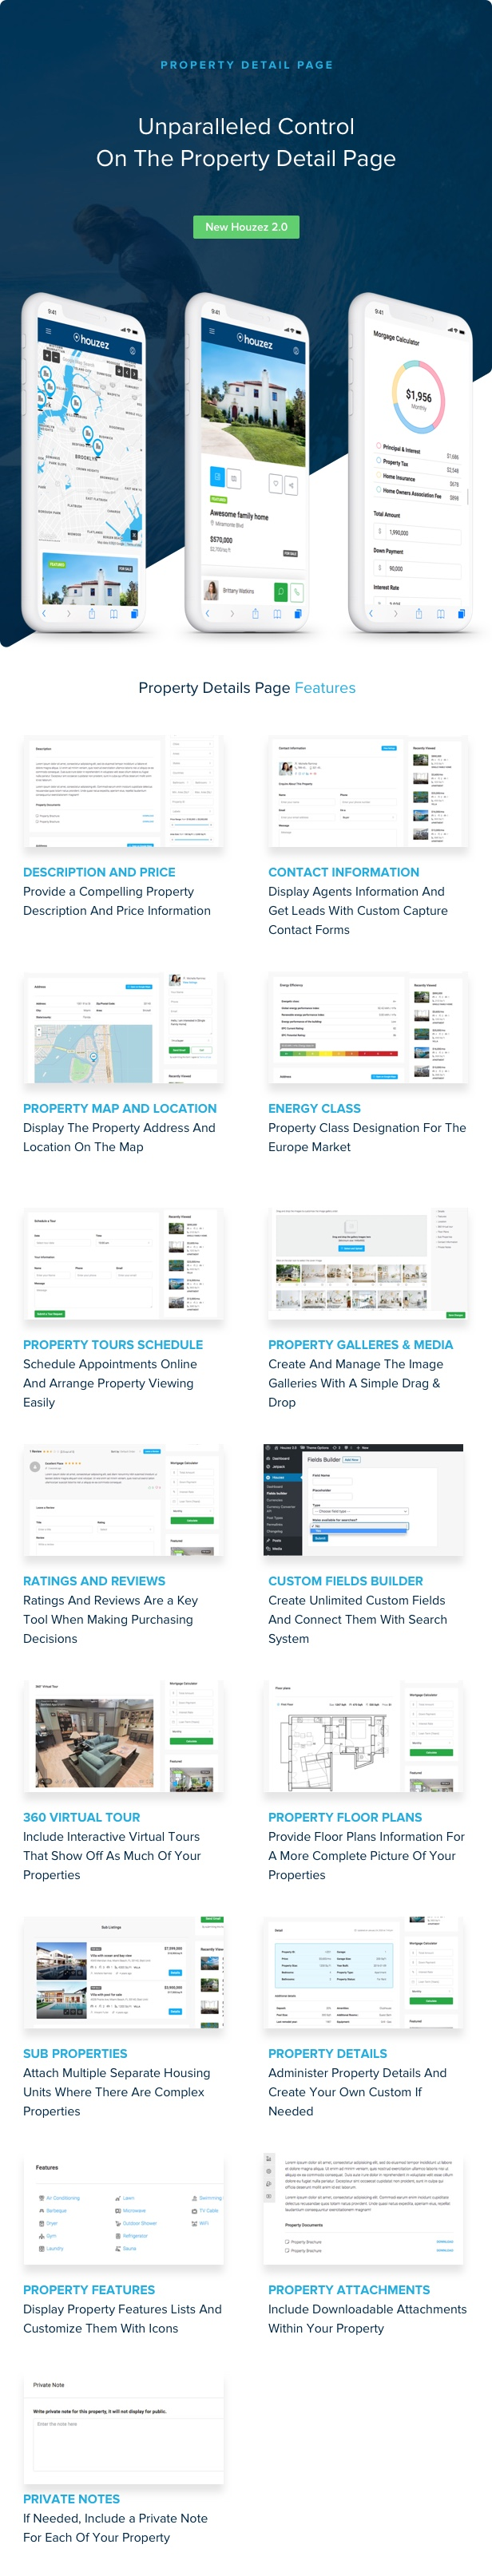 houzez 2 0 property detail page - Houzez - Real Estate WordPress Theme